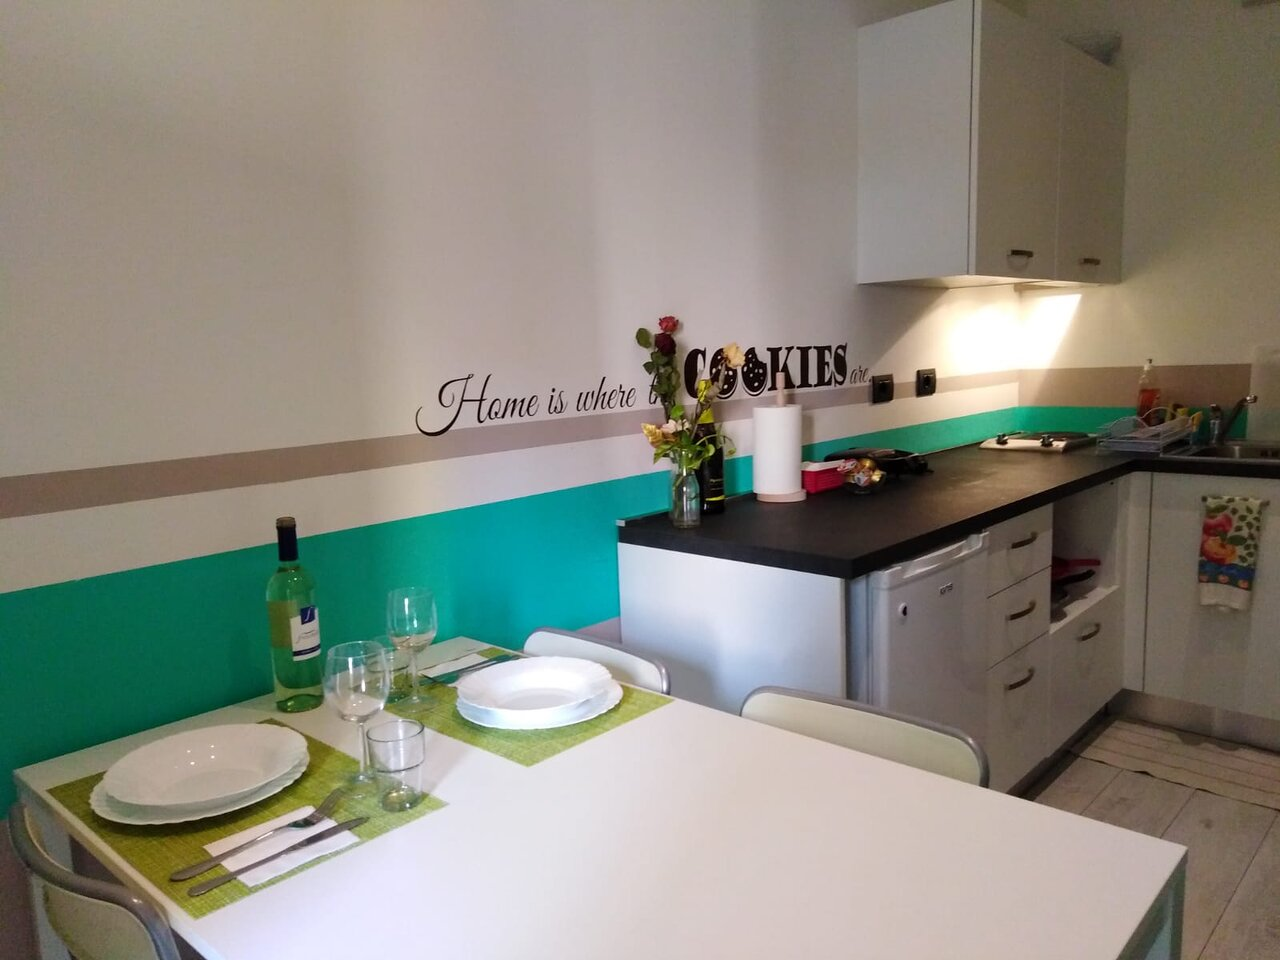 Daydreaming House Prices Guest House Reviews Verona Italy Tripadvisor